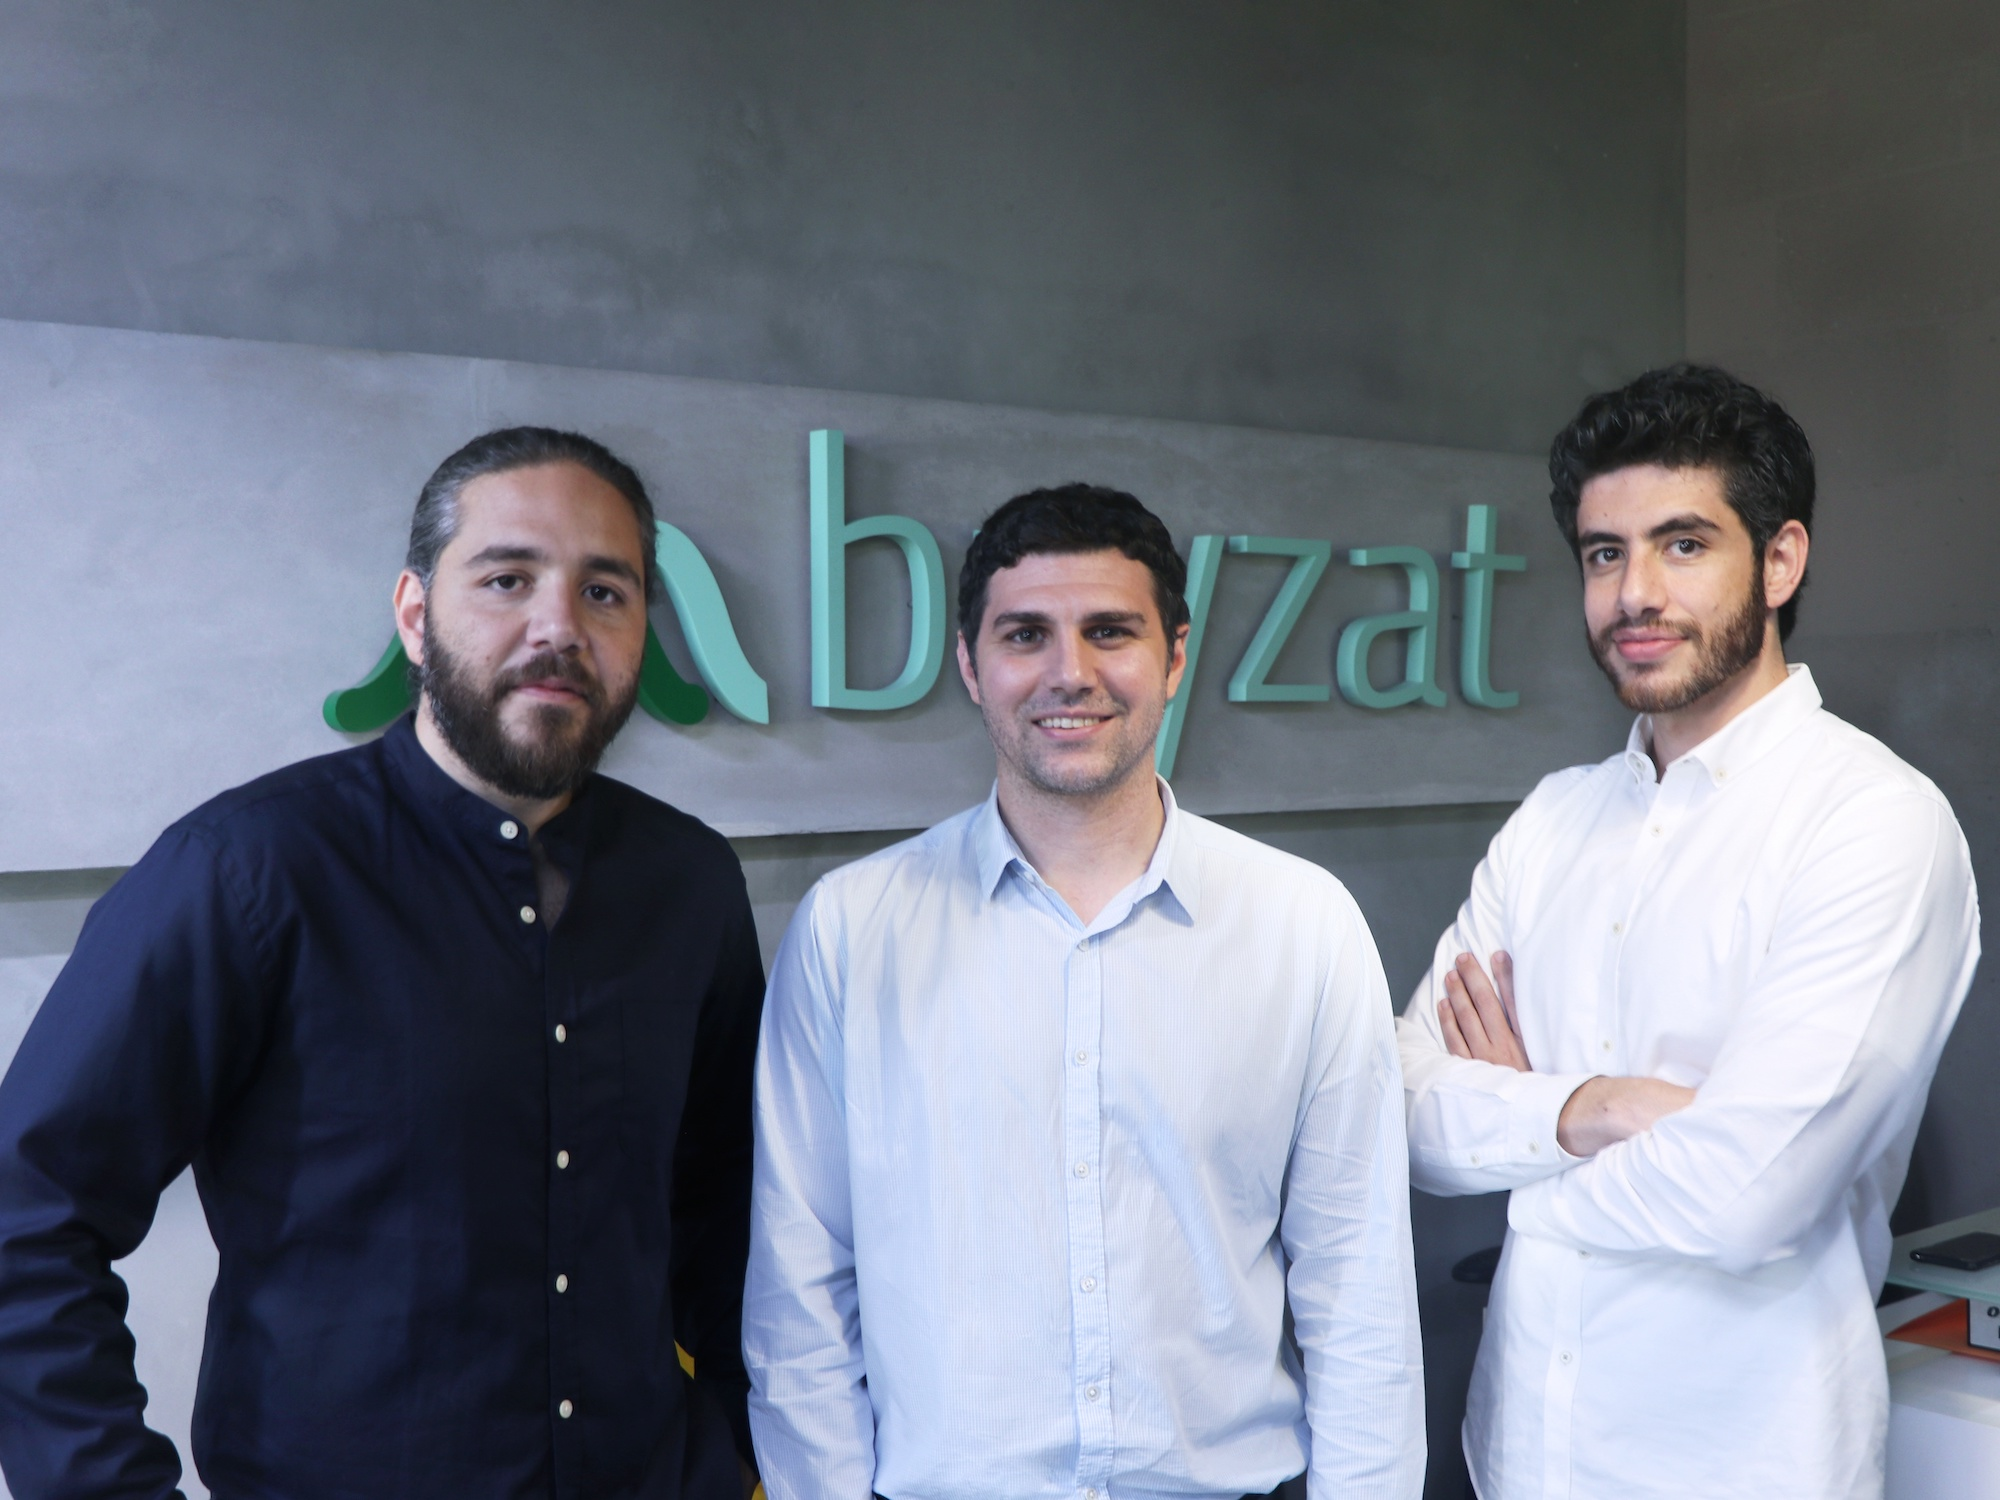 Dubai-based Bayzat raises $16M in funding from multiple investors